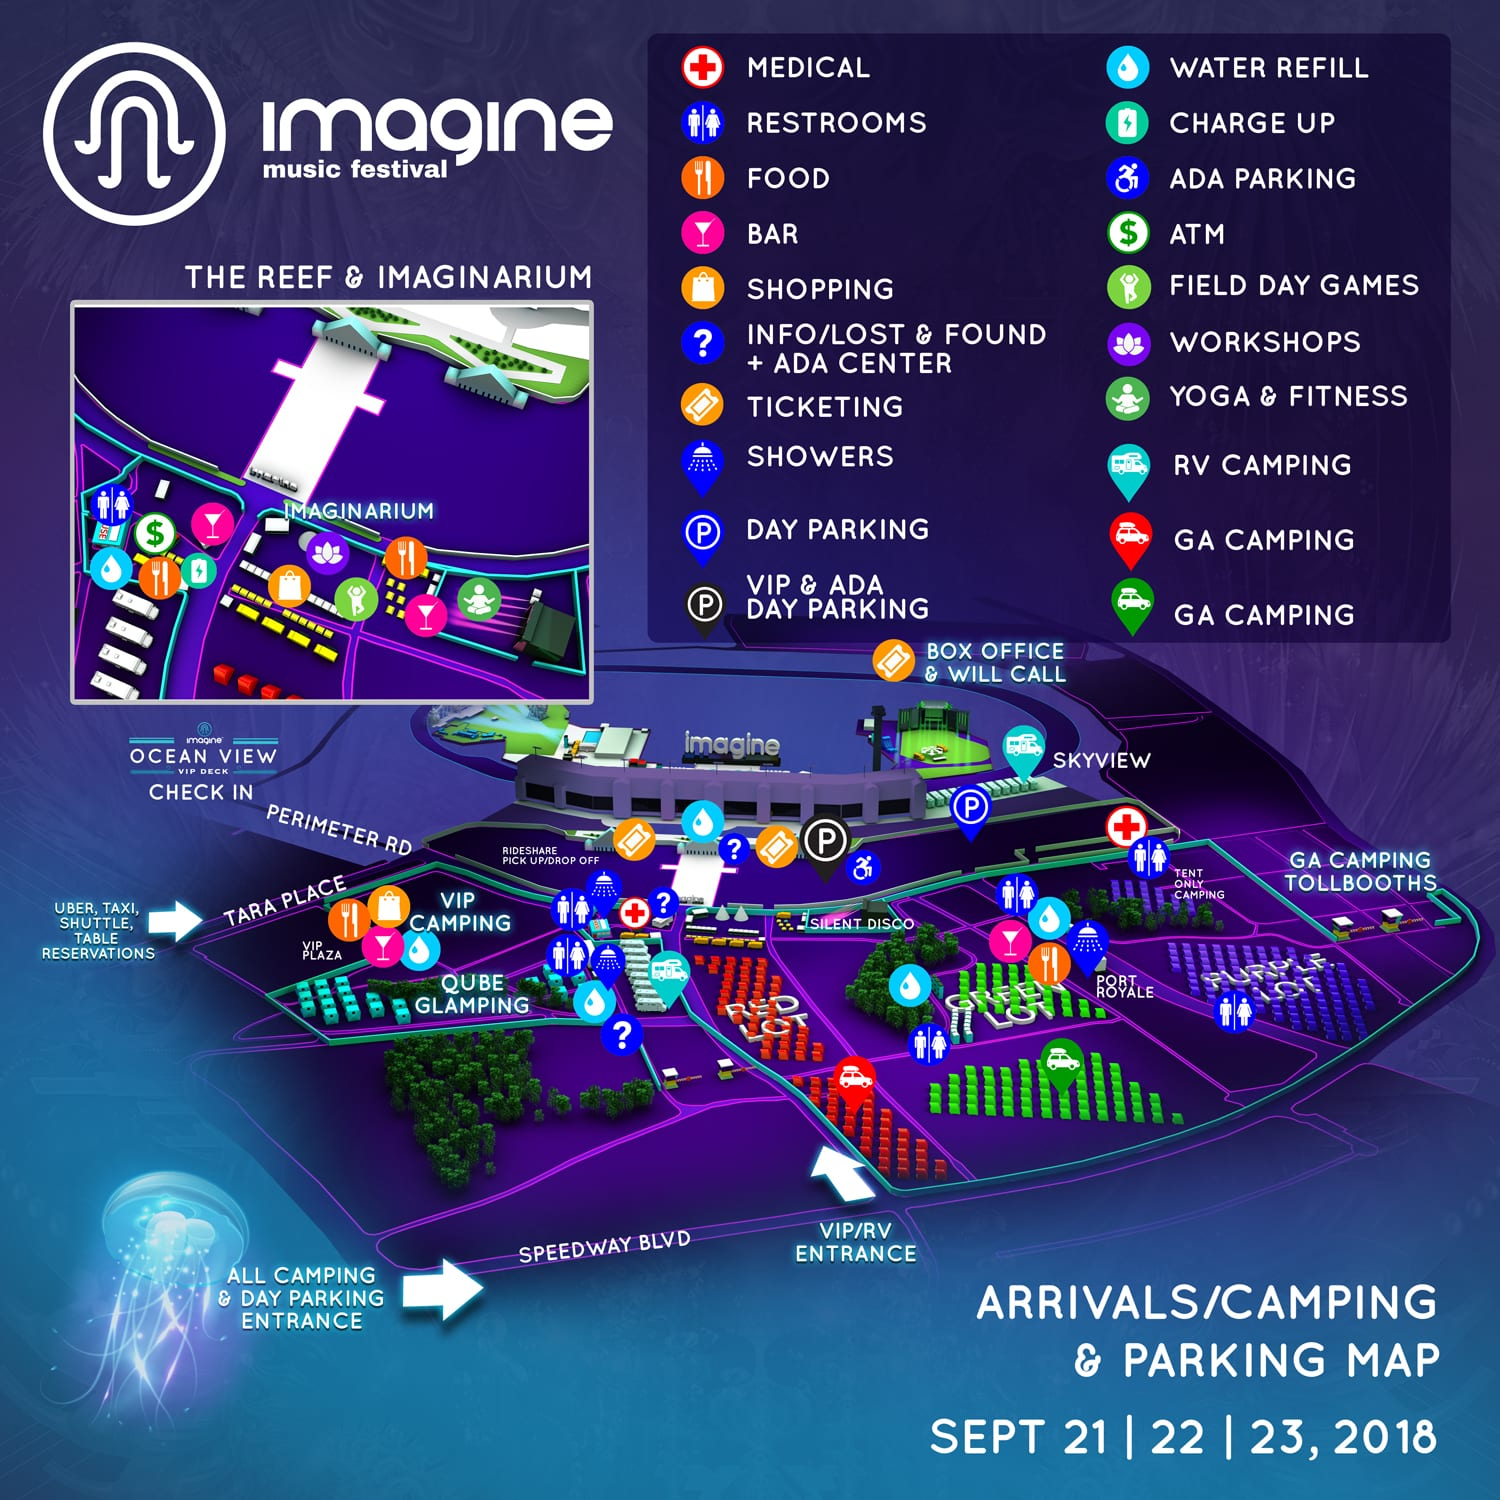 Imagine Music Festival 2018 Camping Map - Imagine 2018 Festival & Camping Map